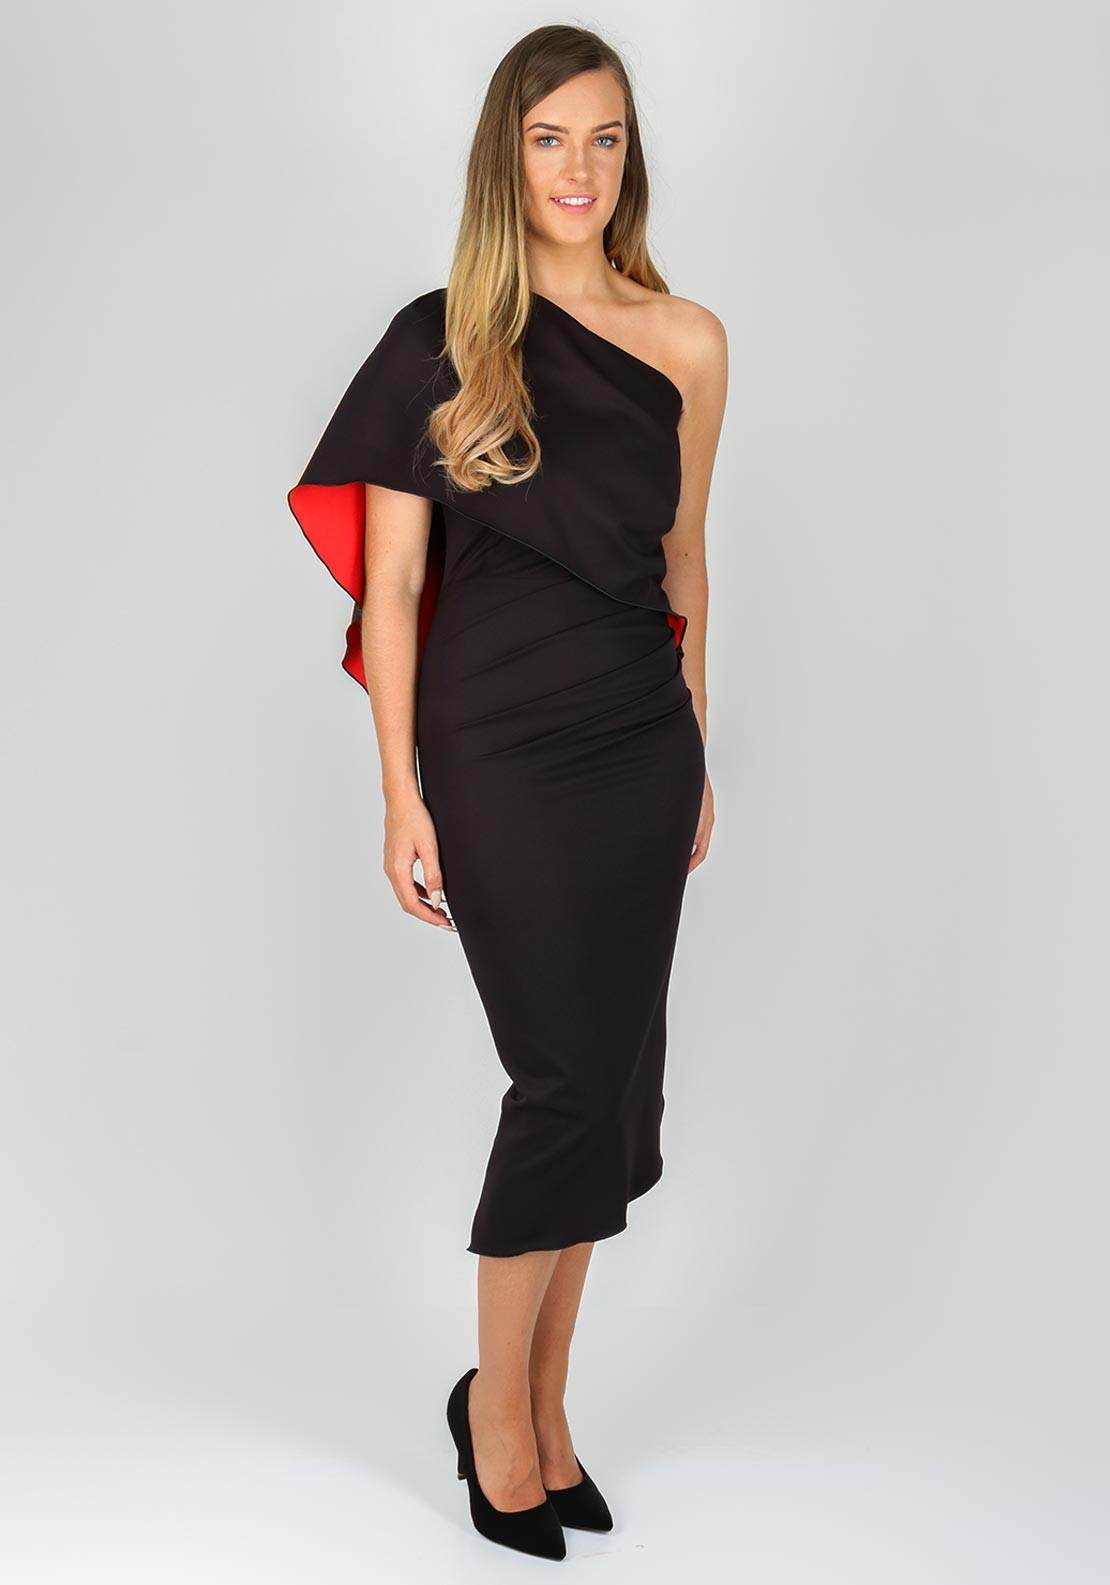 c6eb69f6cf22 Kevan Jon Charlotte One Shoulder Cape Dress